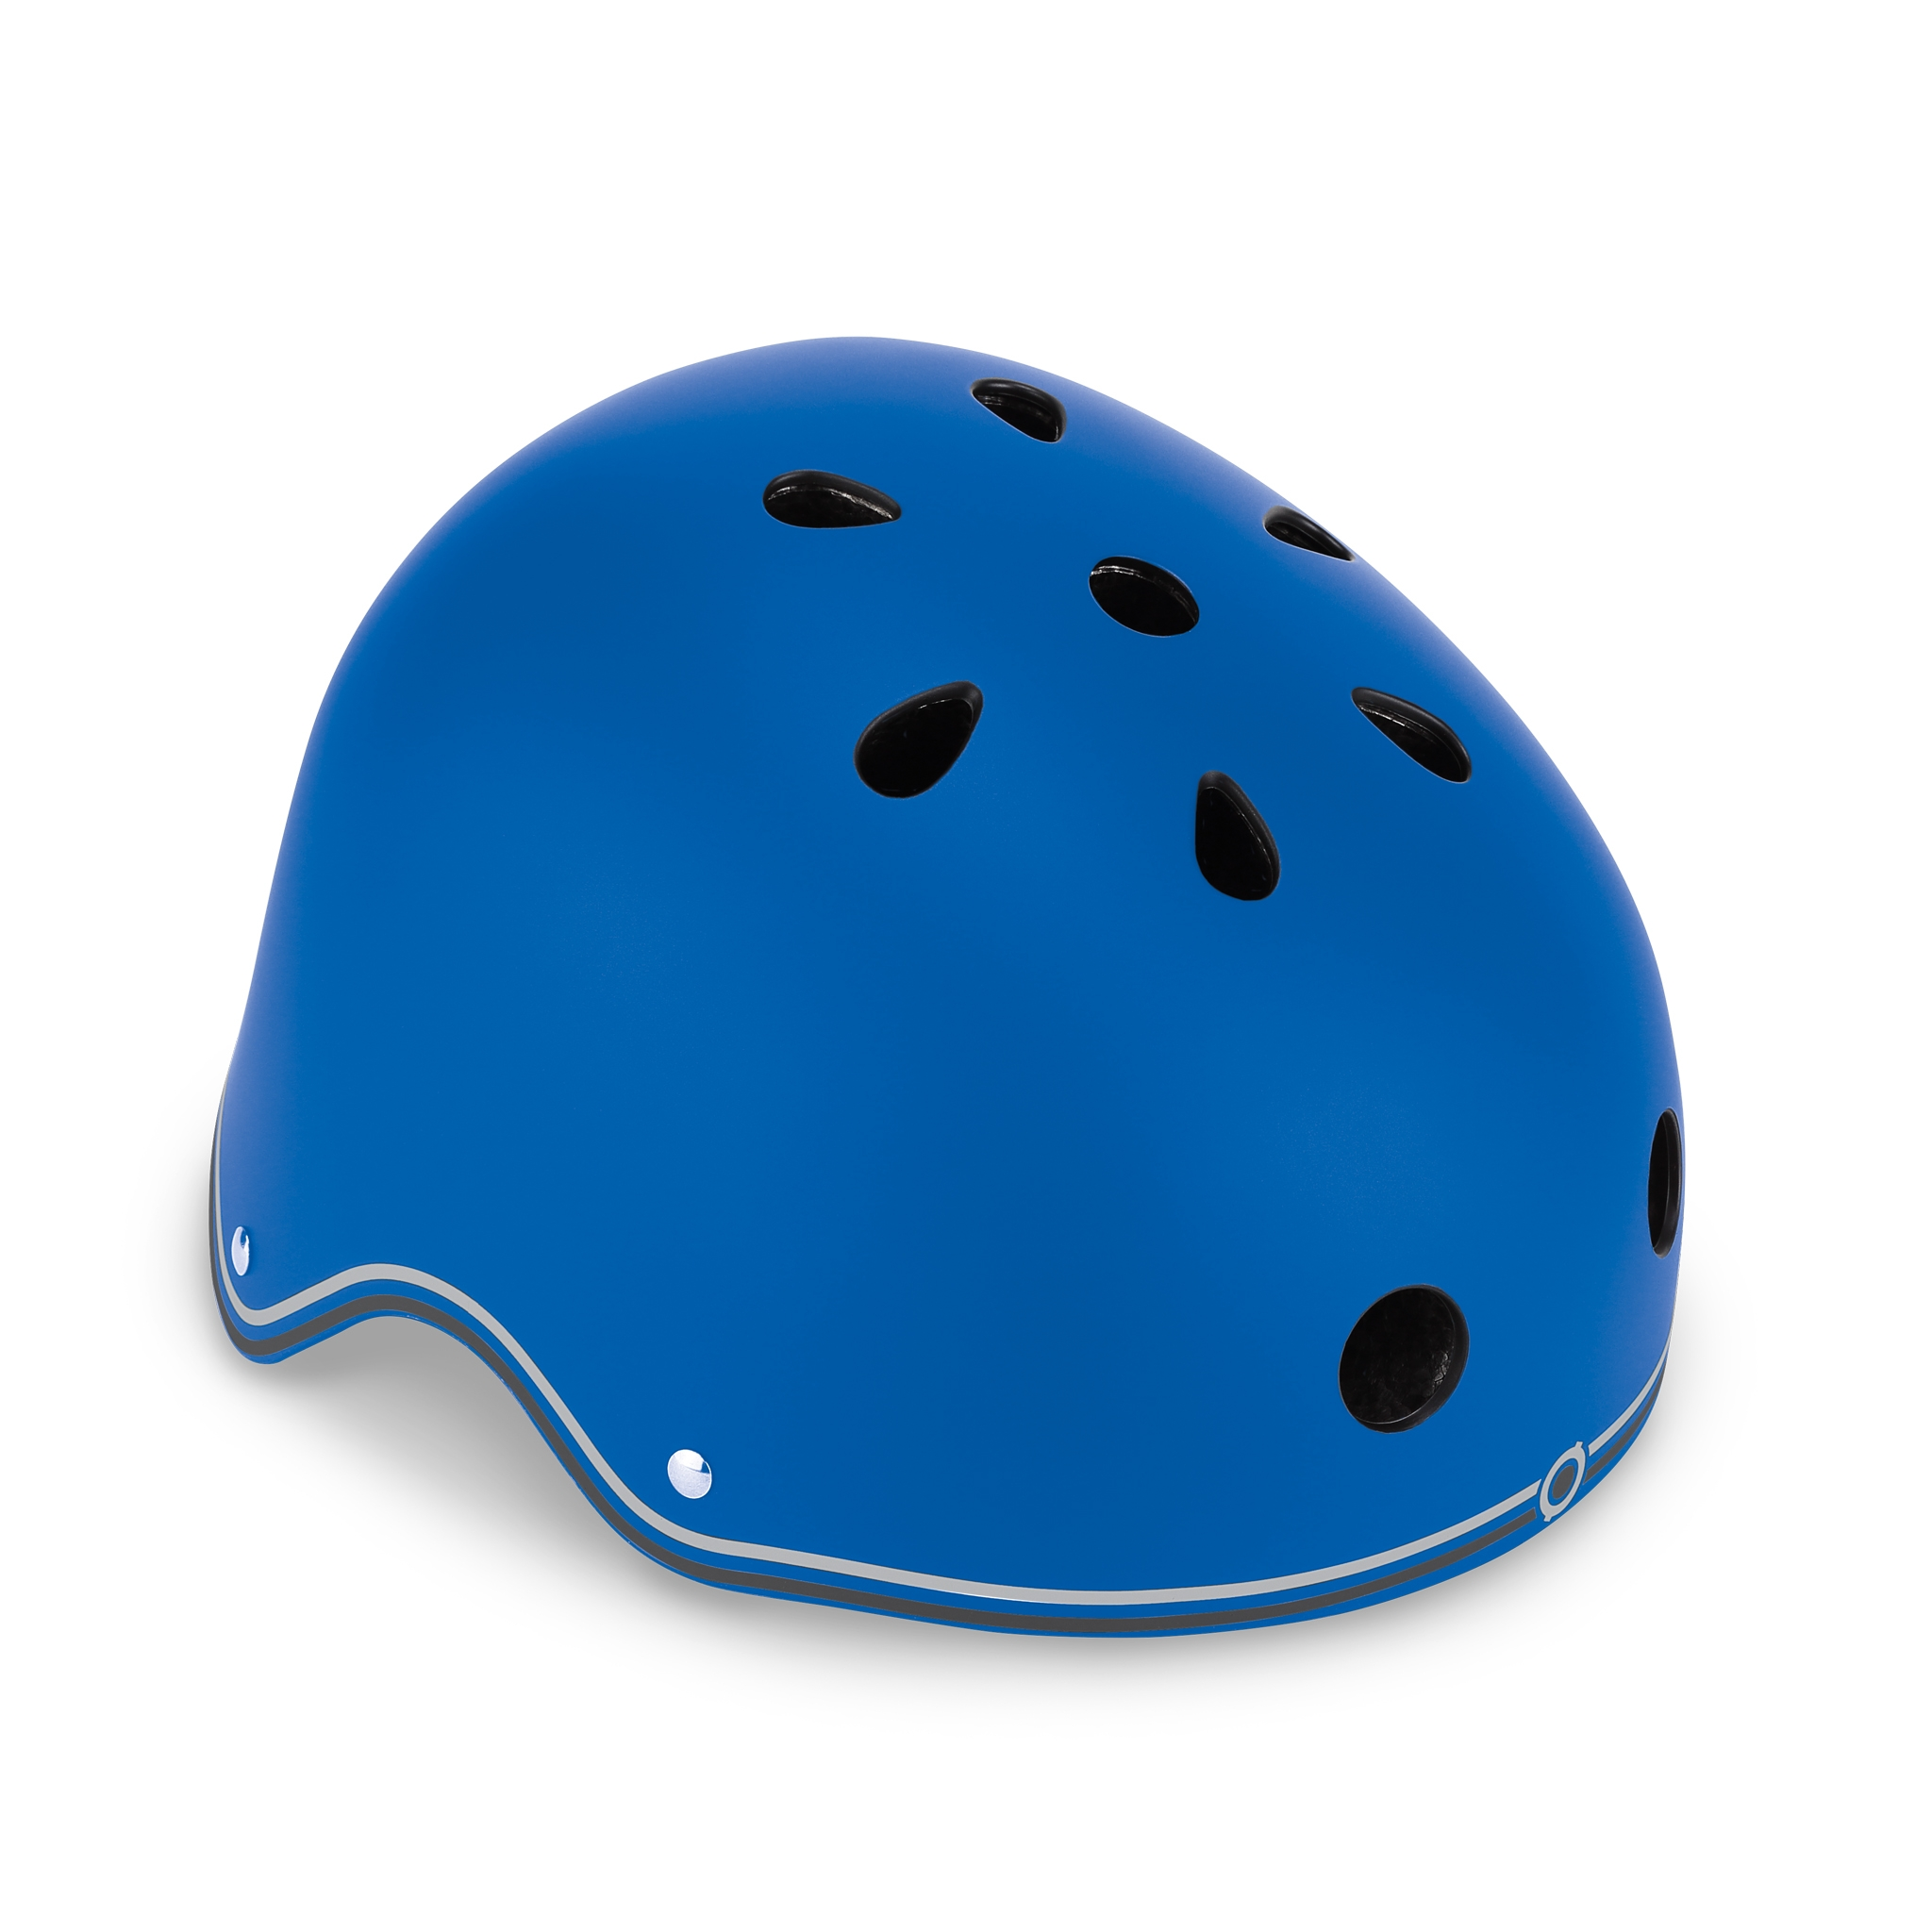 PRIMO-helmets-scooter-helmets-for-kids-in-mold-polycarbonate-outer-shell-navy-blue